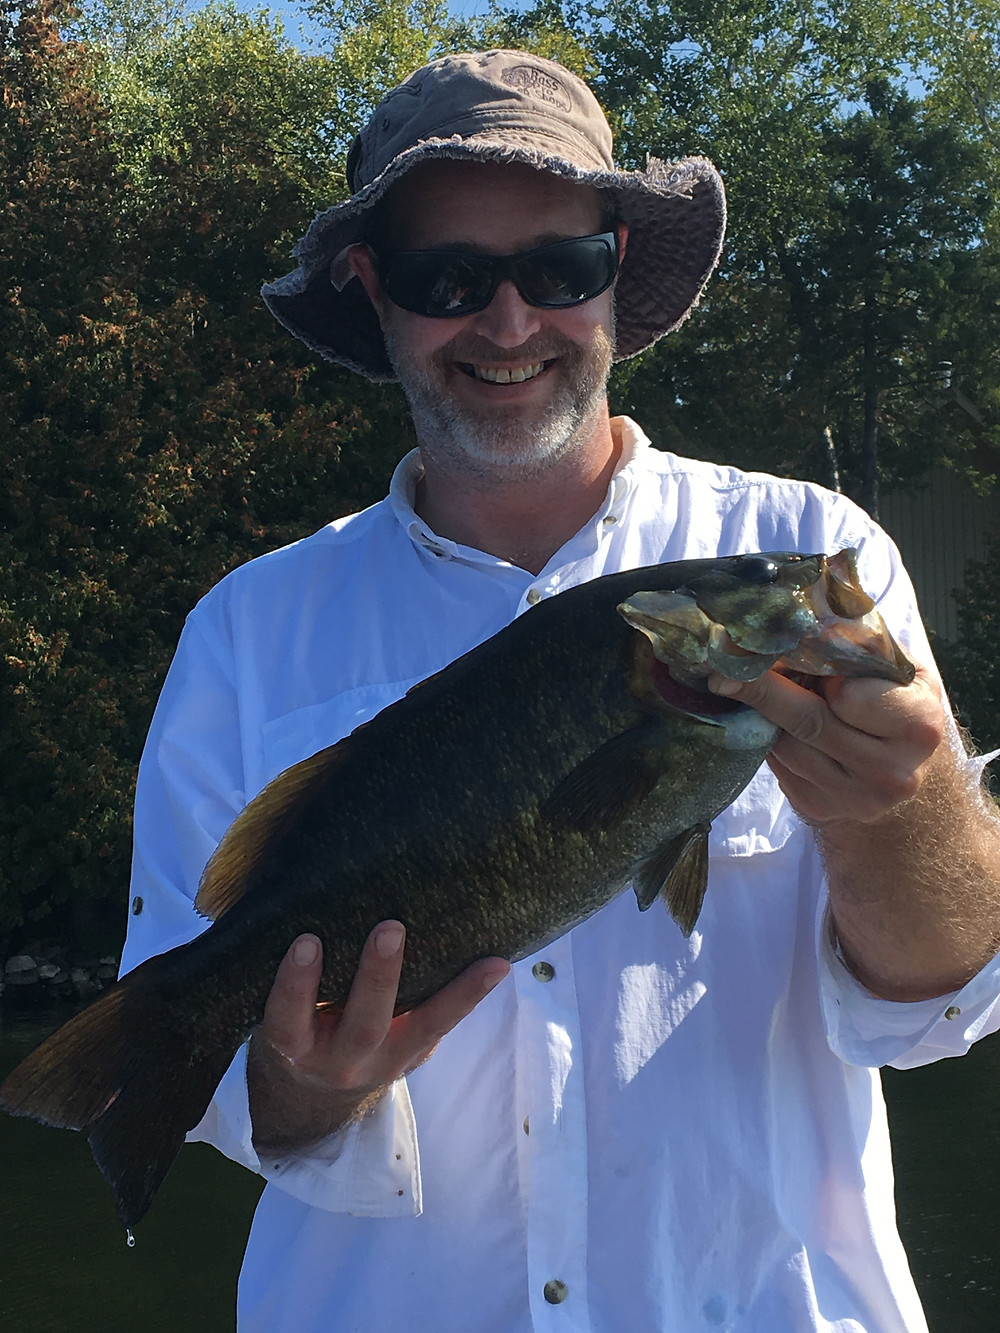 Nice bass caught on Balsam Lake in the Kawartha Region of Ontario, Canada